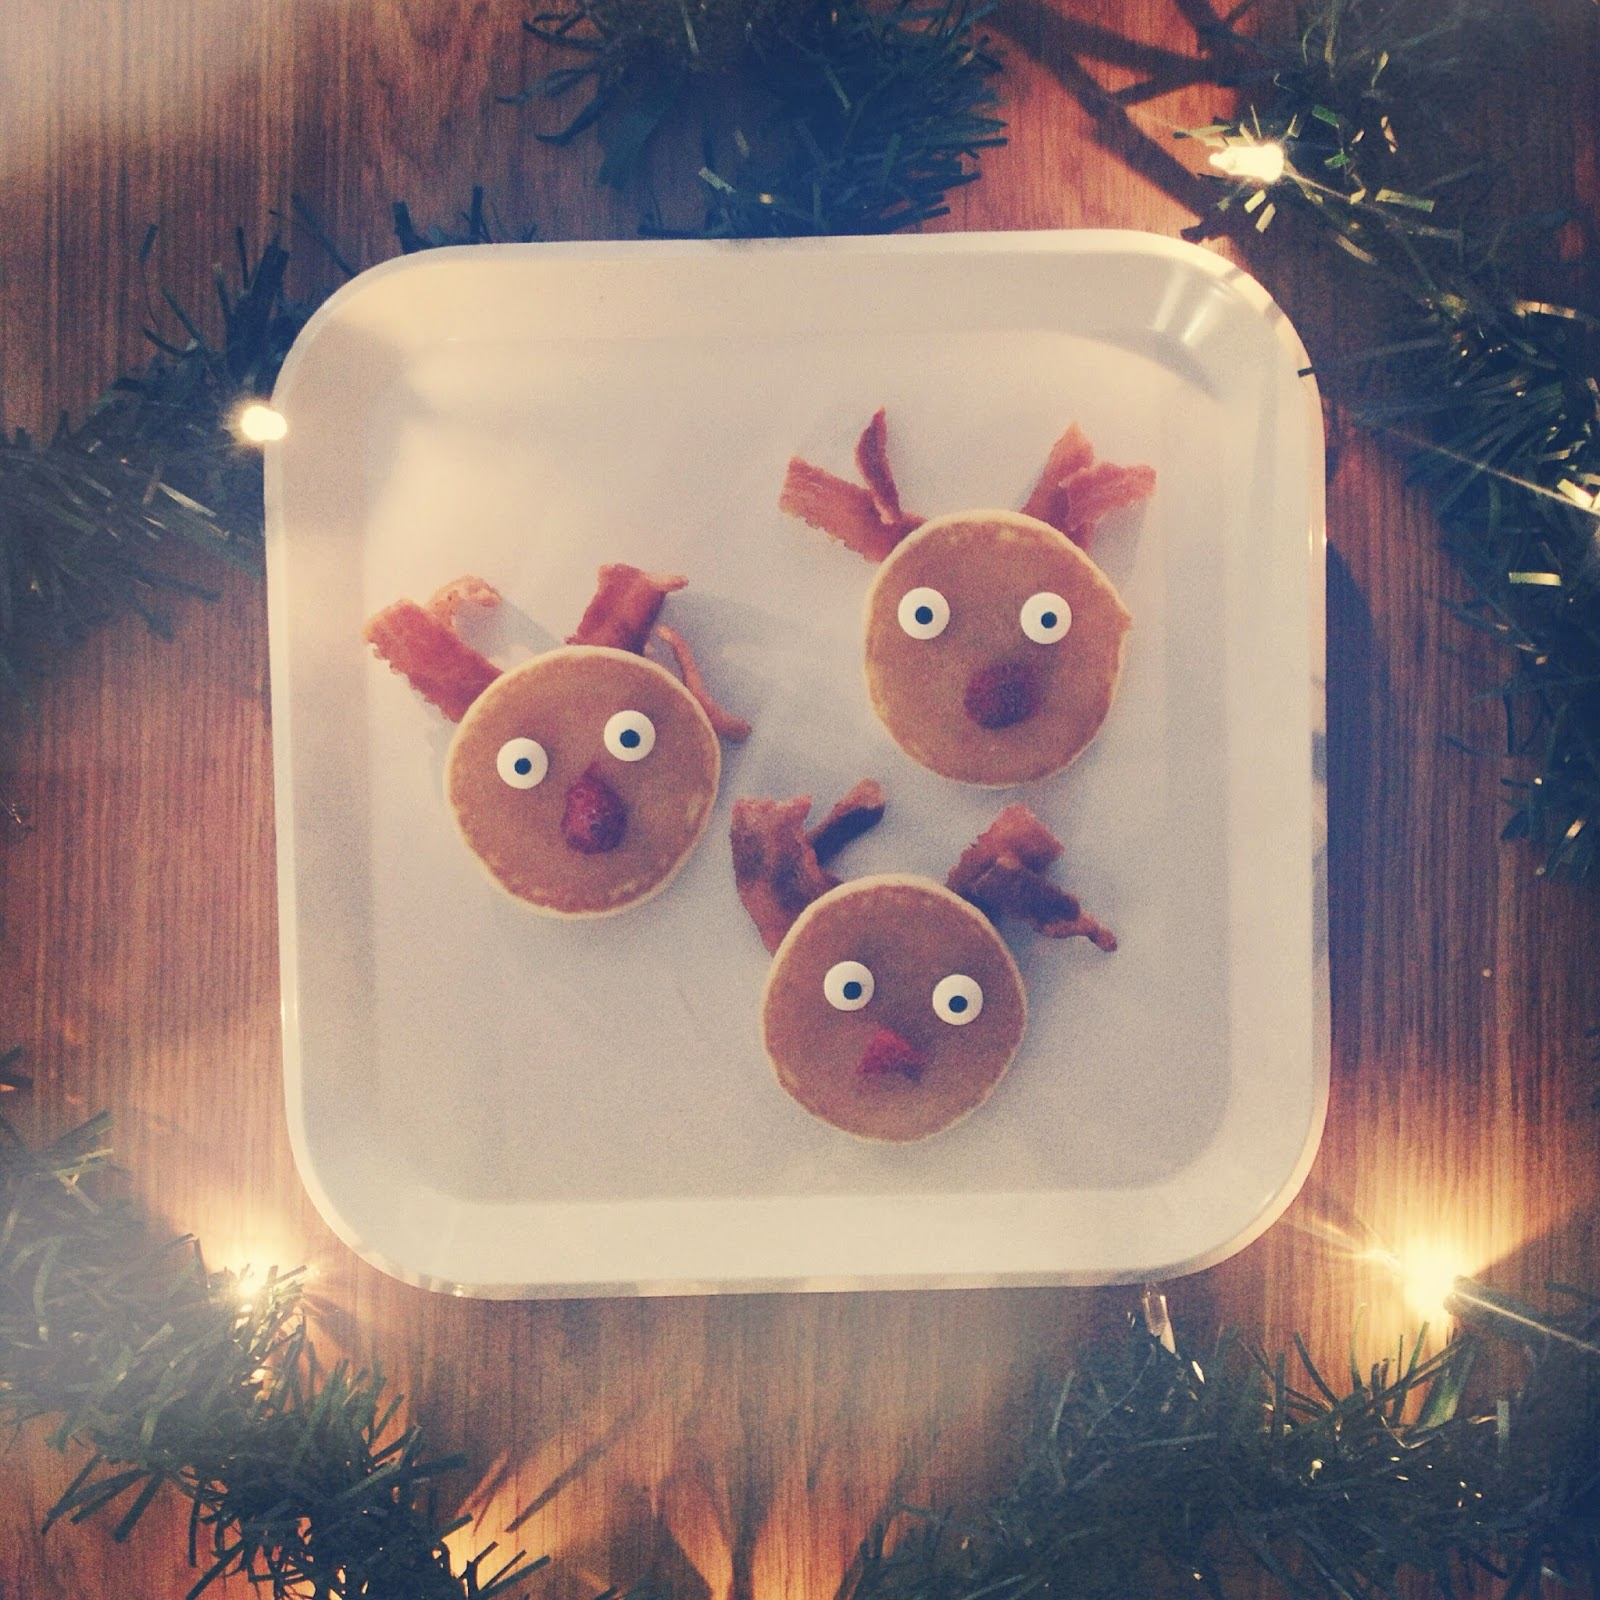 Fun Kid's Christmas Breakfast Ideas - Reindeer Pancakes